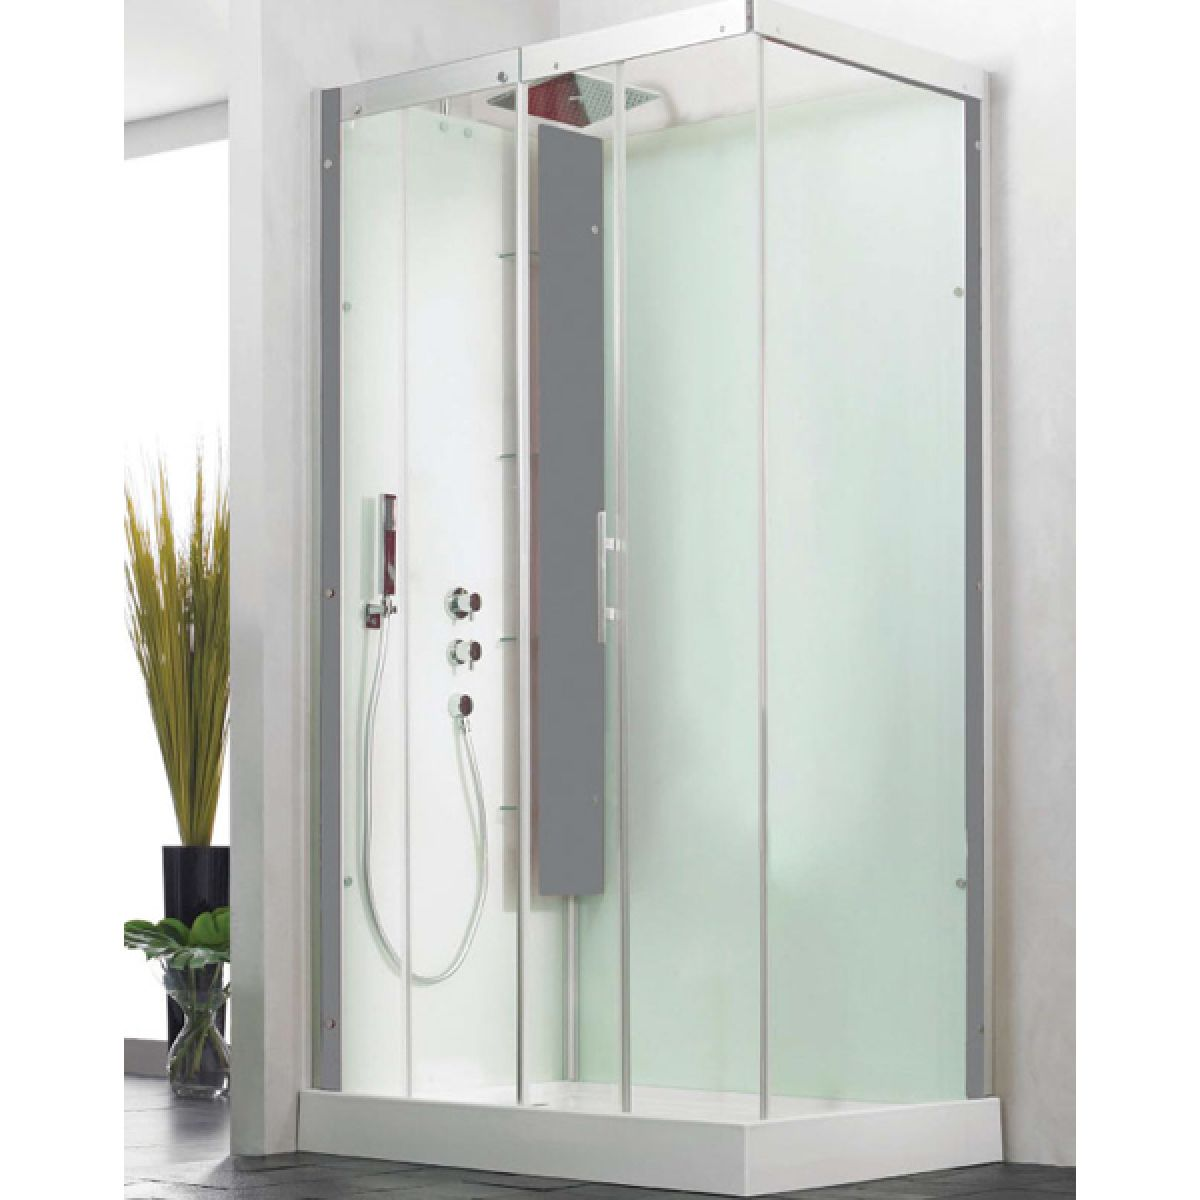 Kinedo Horizon Thermostatic Pivot Corner Self Contained Shower Cubicle